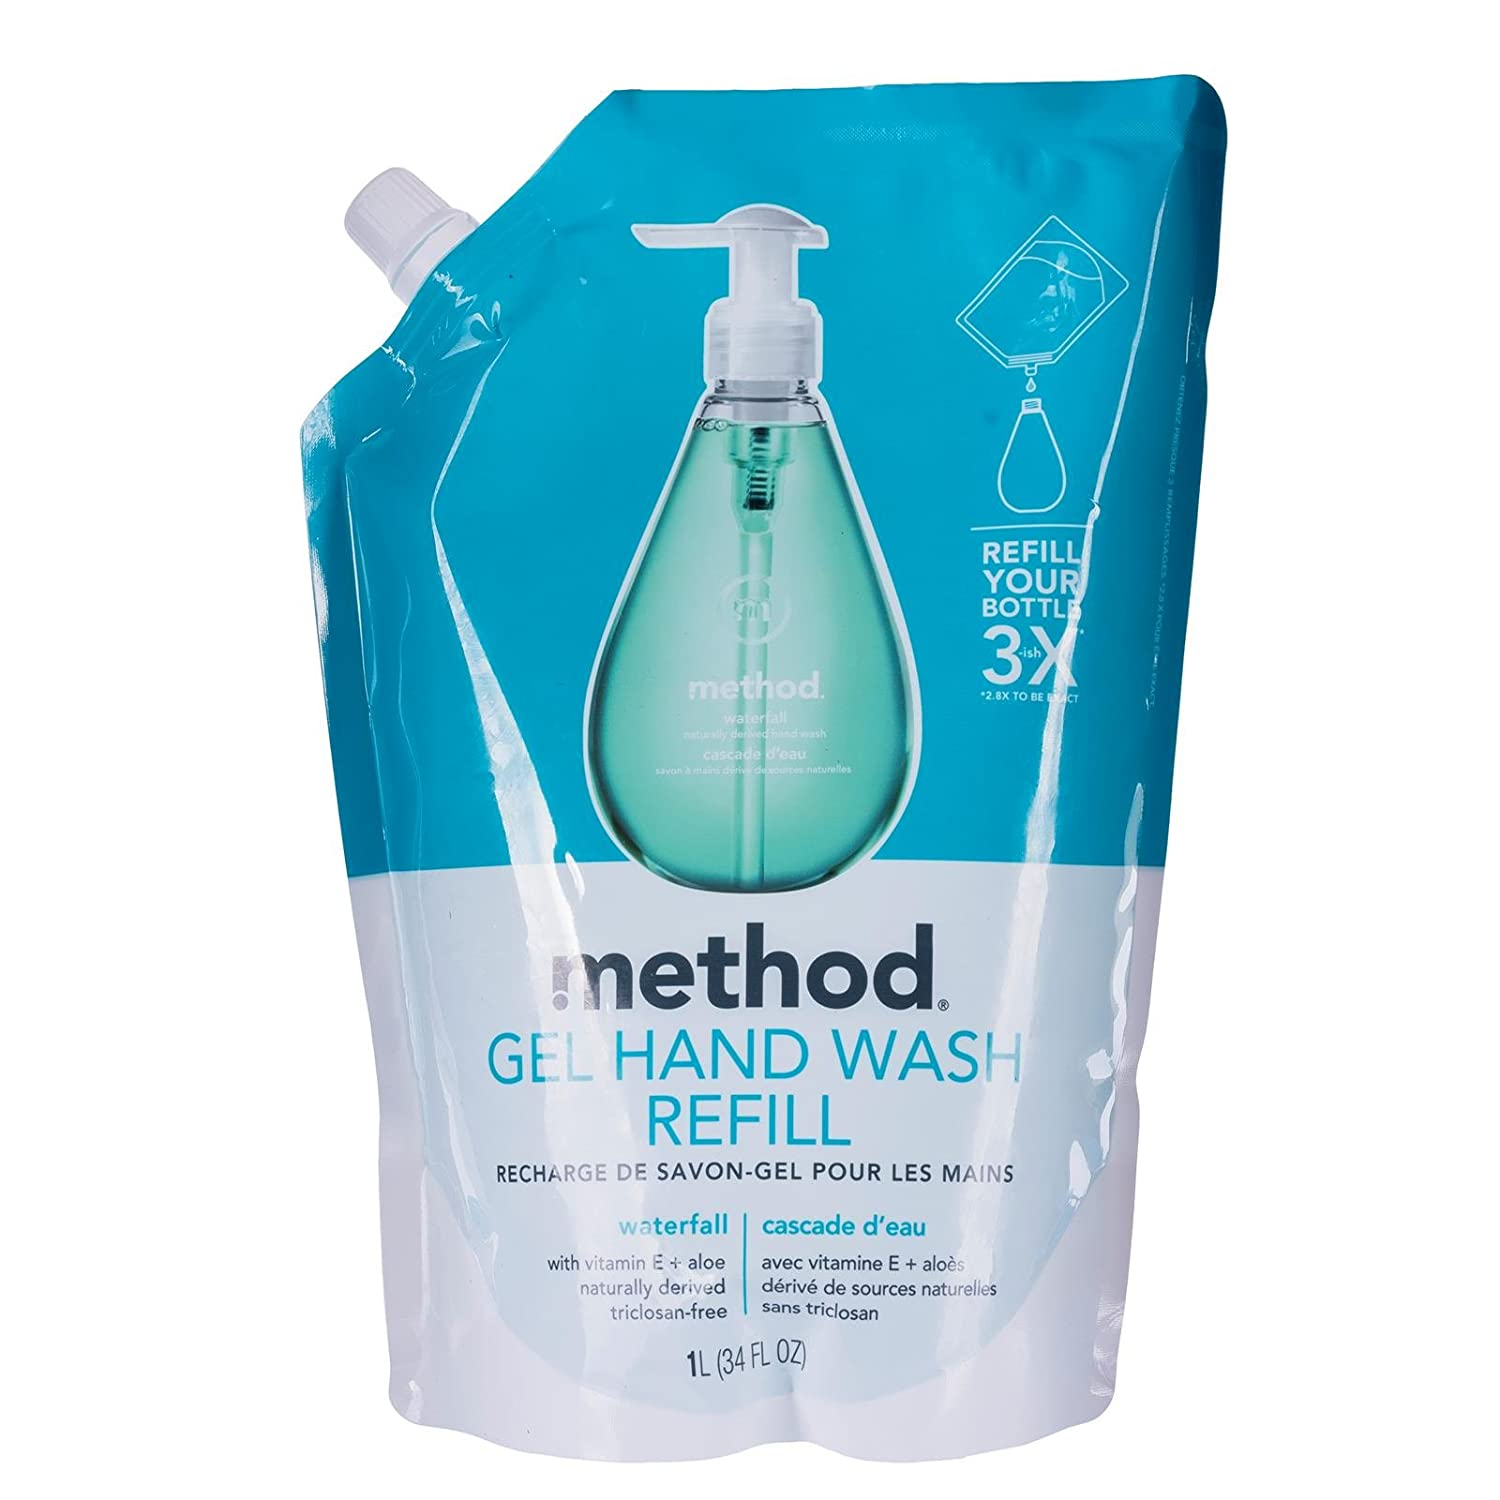 Method hand wash go naked